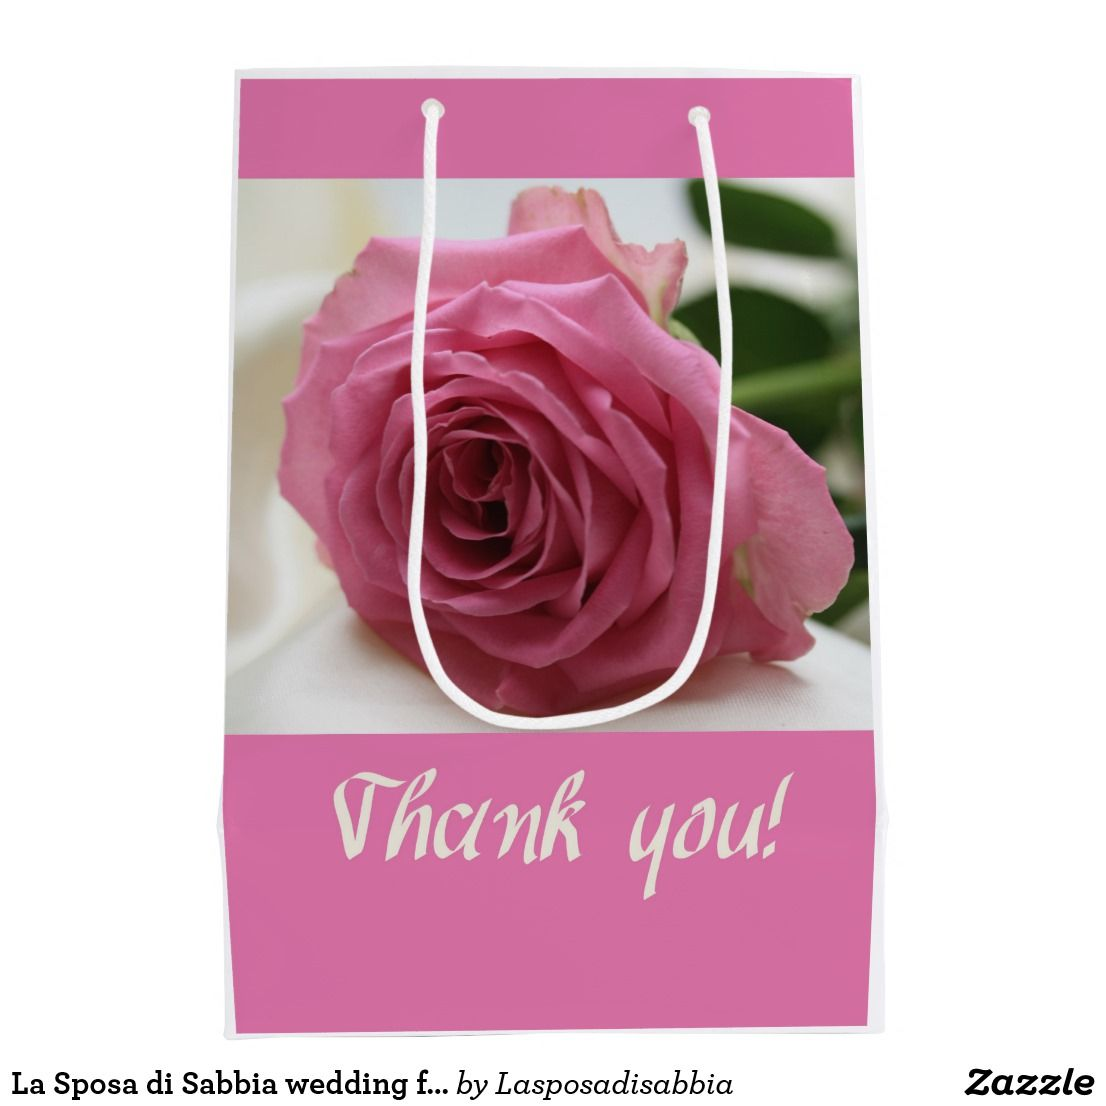 La Sposa di Sabbia wedding favor Medium Gift Bag | La sposa, Favors ...